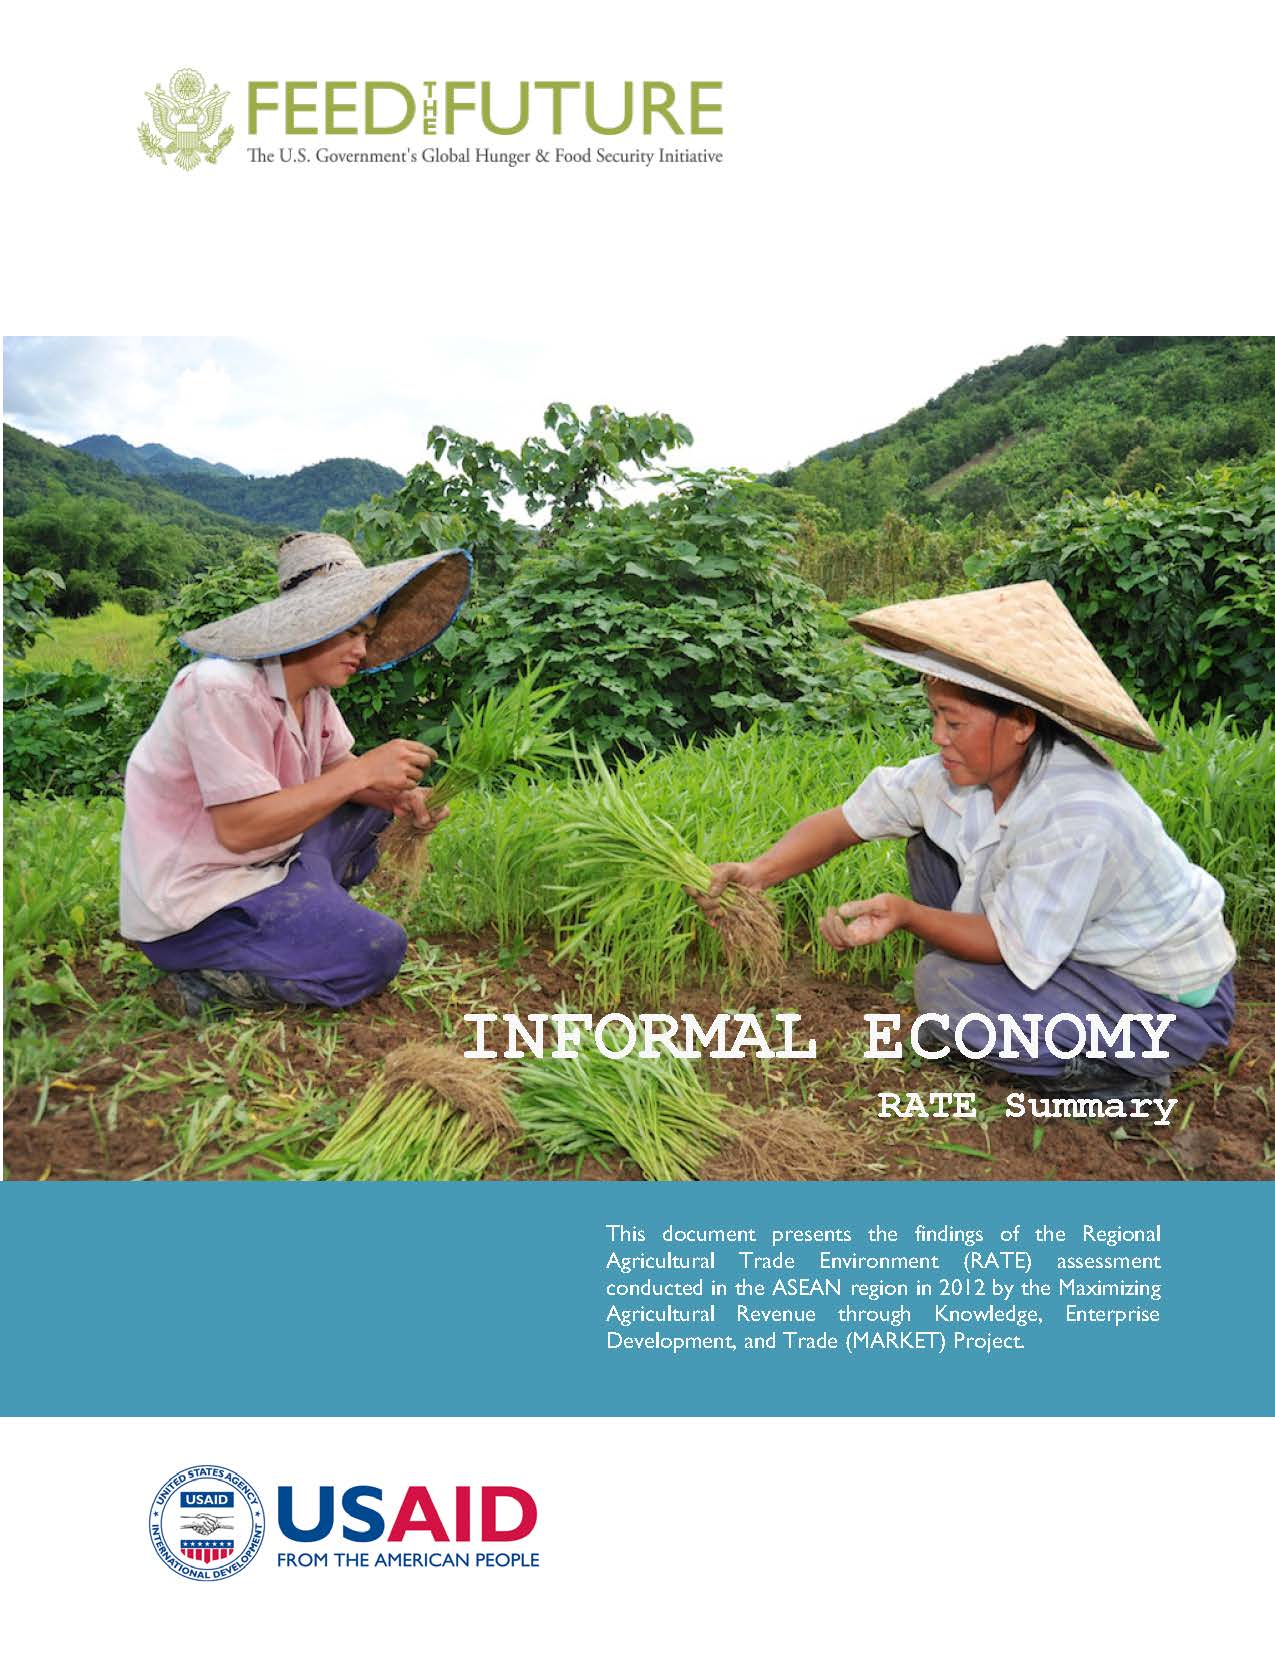 ASEAN Regional Agricultural Trade Environment Assessment Reports: Informal Economy